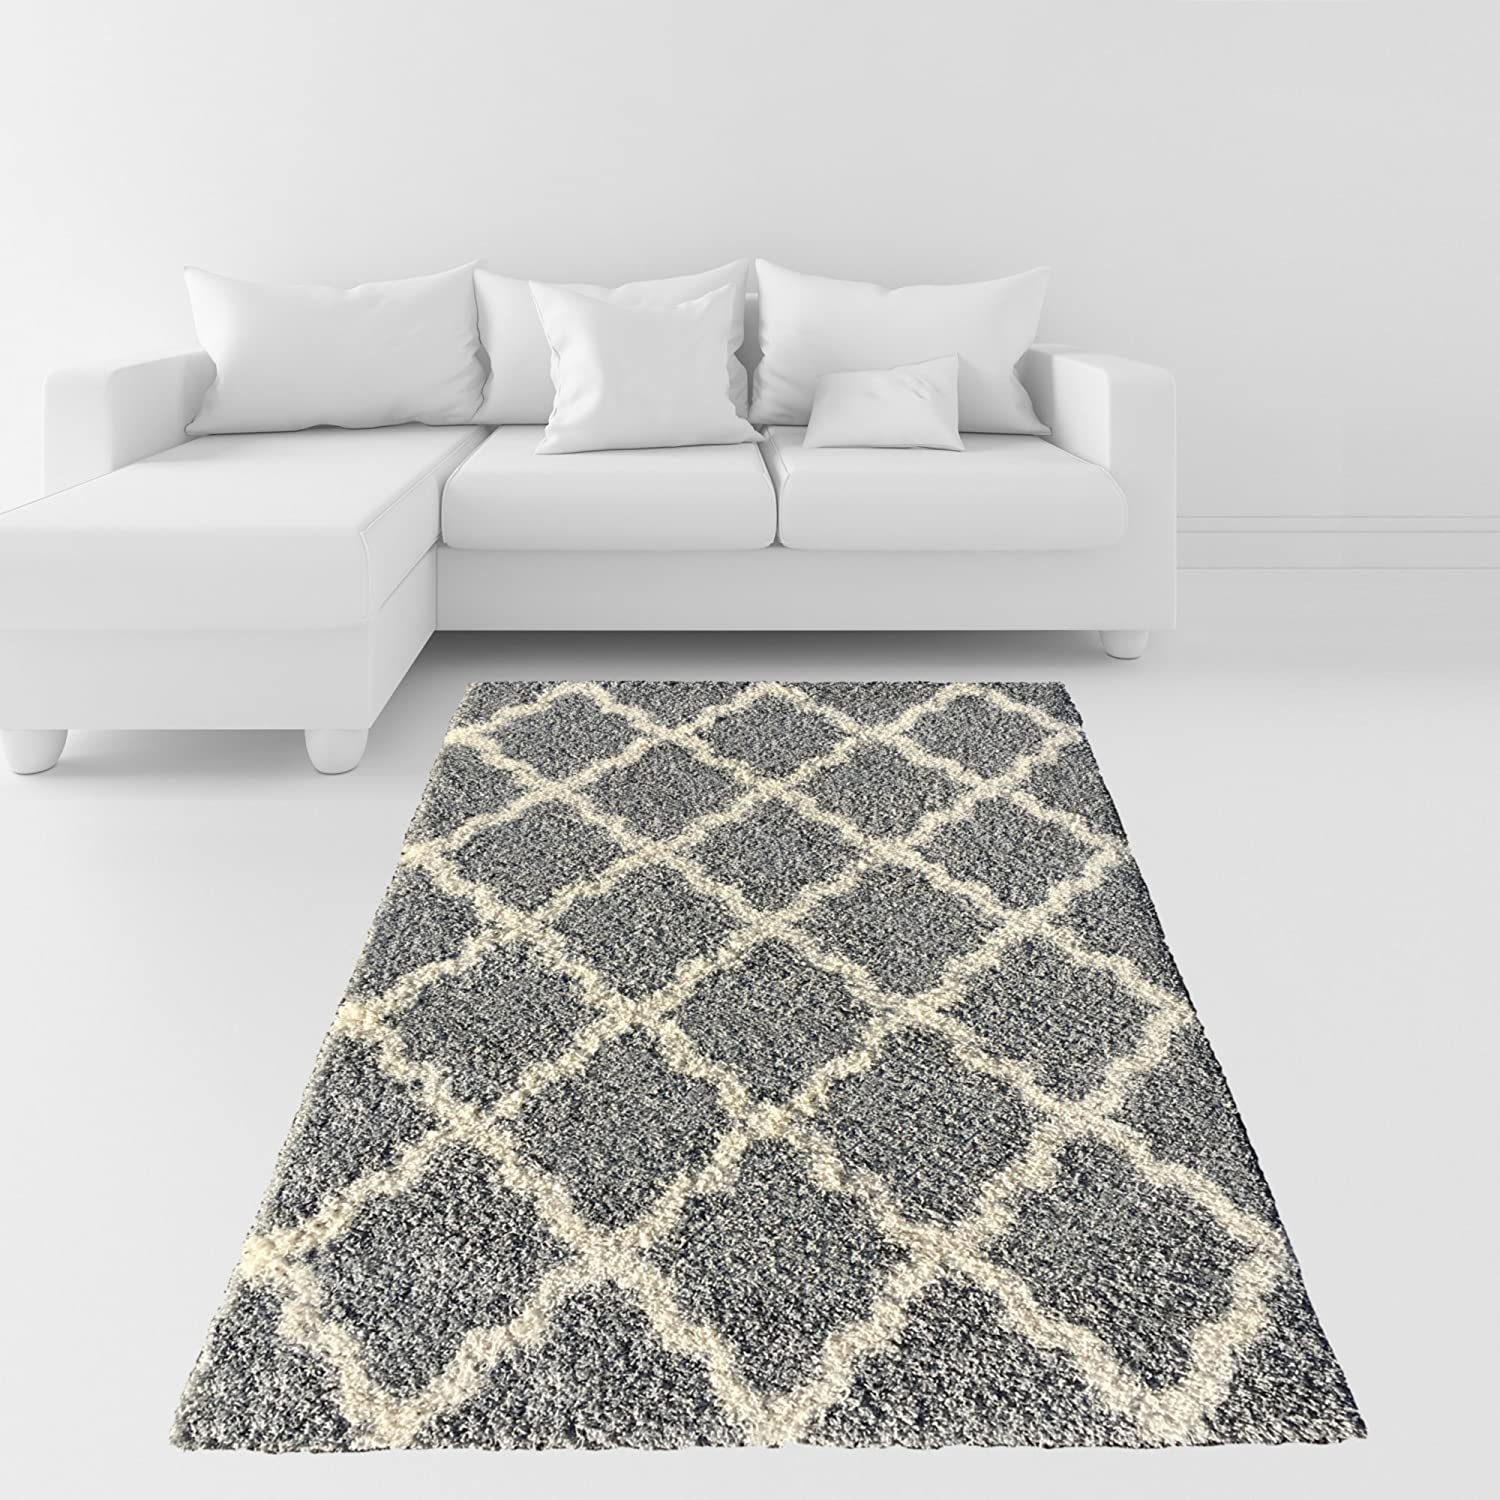 Amazon Soft Shag Area Rug 3x5 Moroccan Trellis Grey Ivory